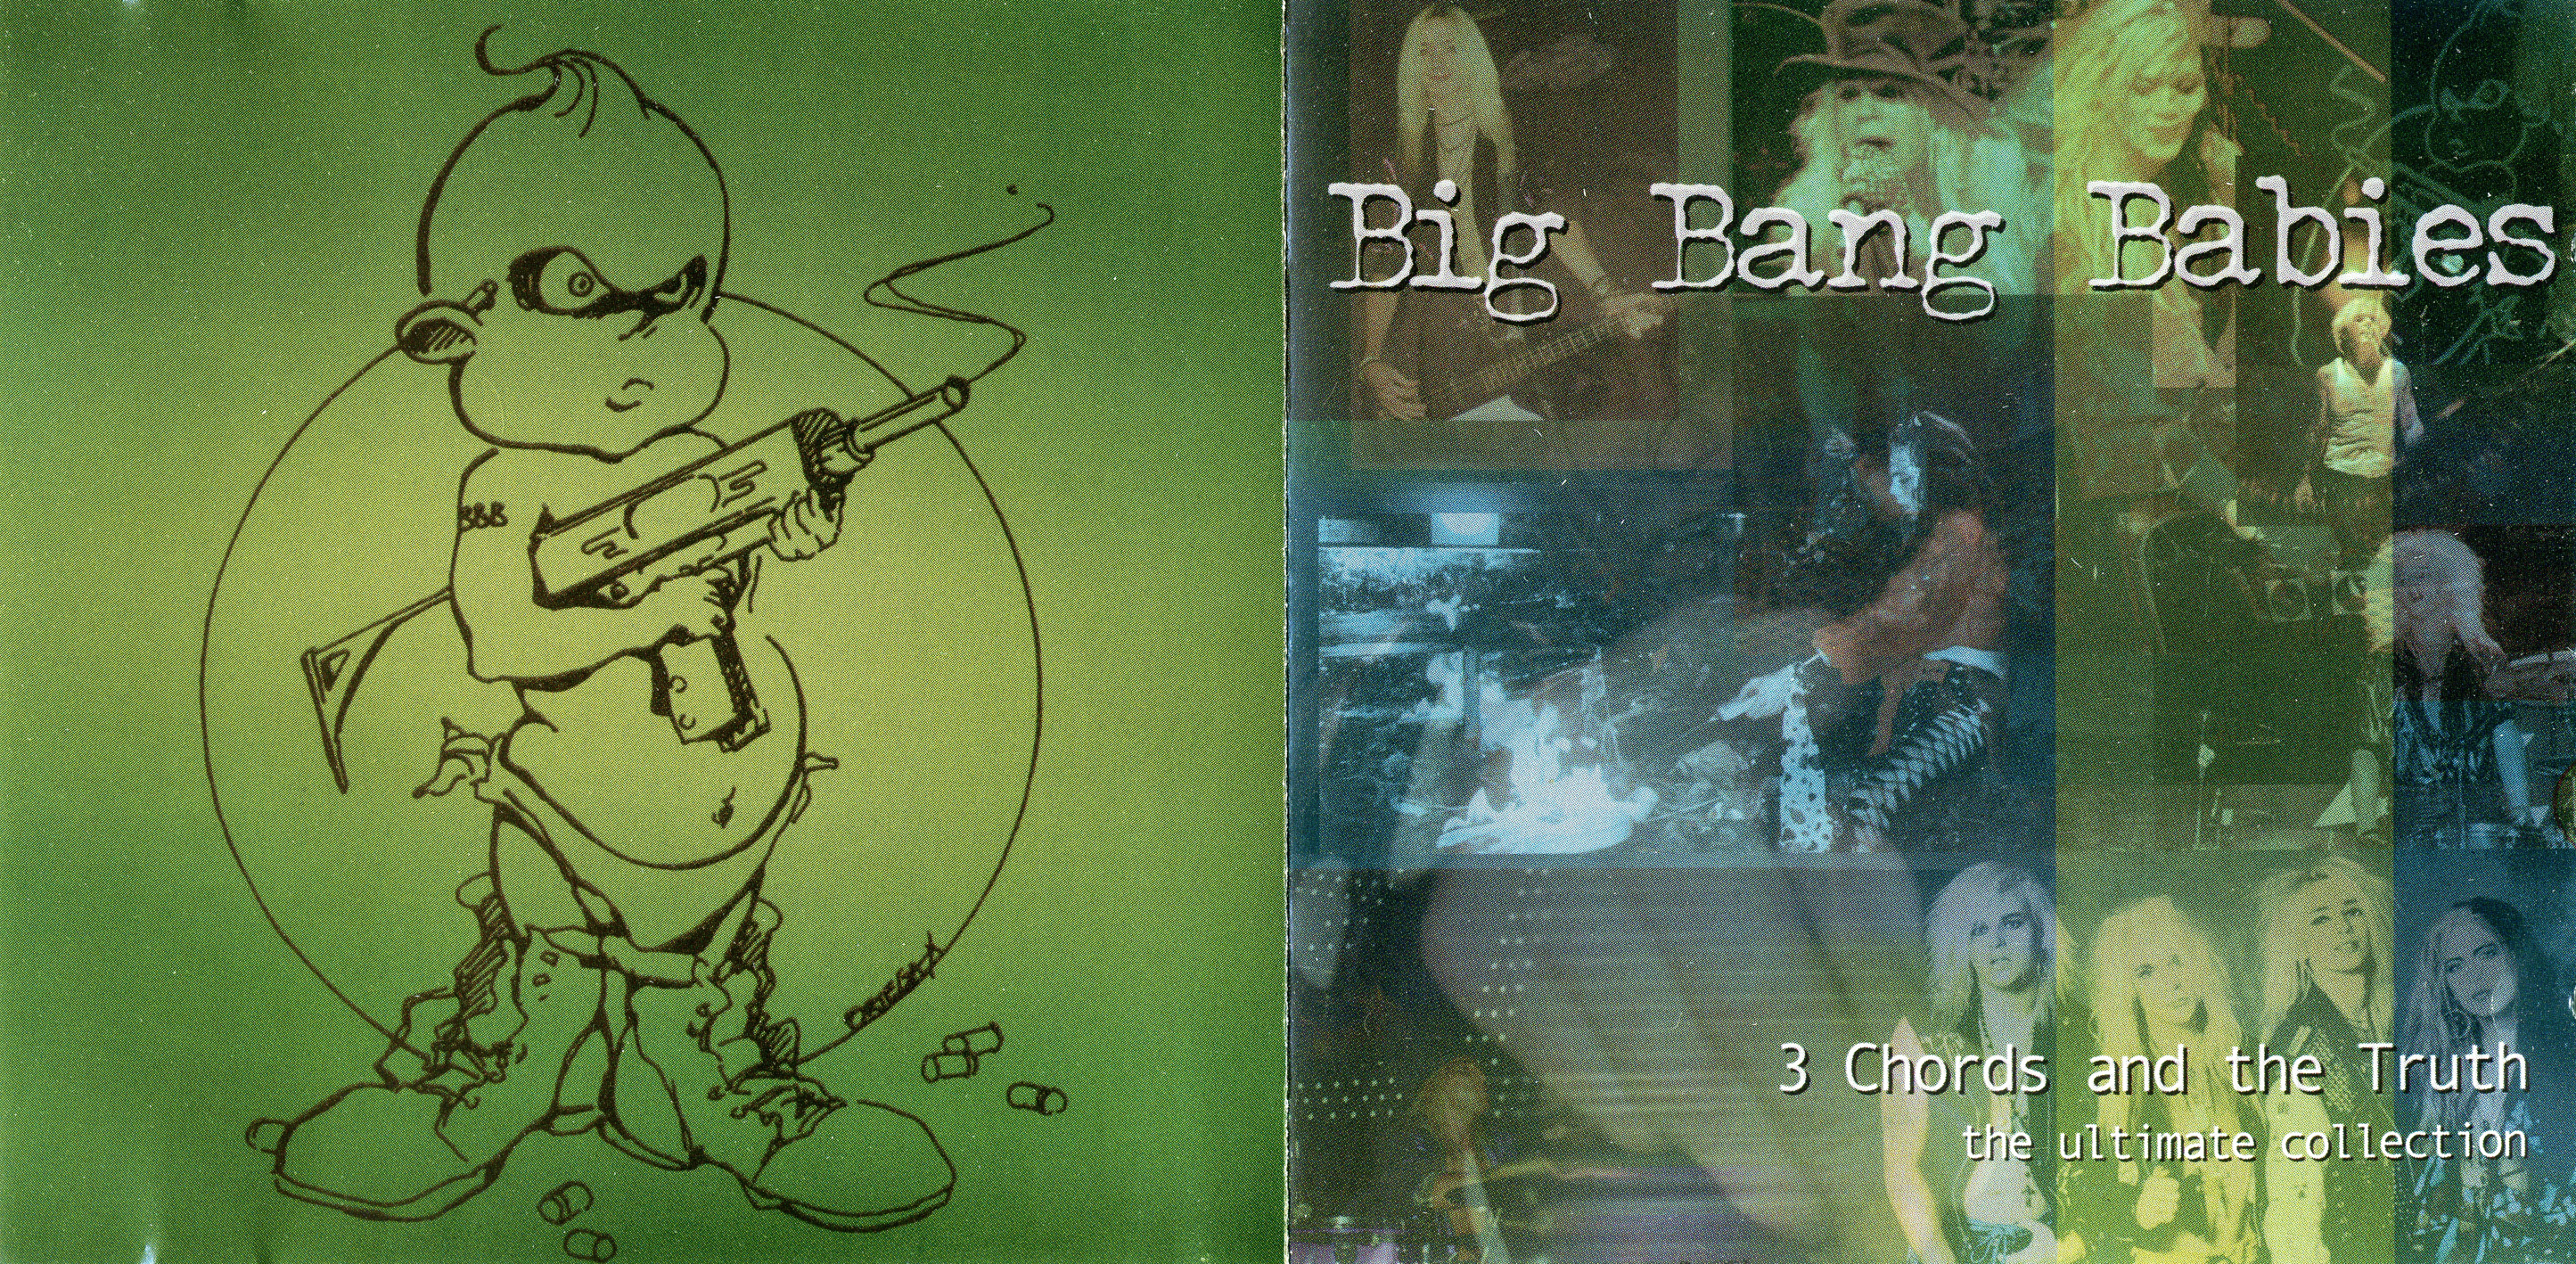 Big Bang Babies - 3 Chords And The Truth - Booklet (1-2)